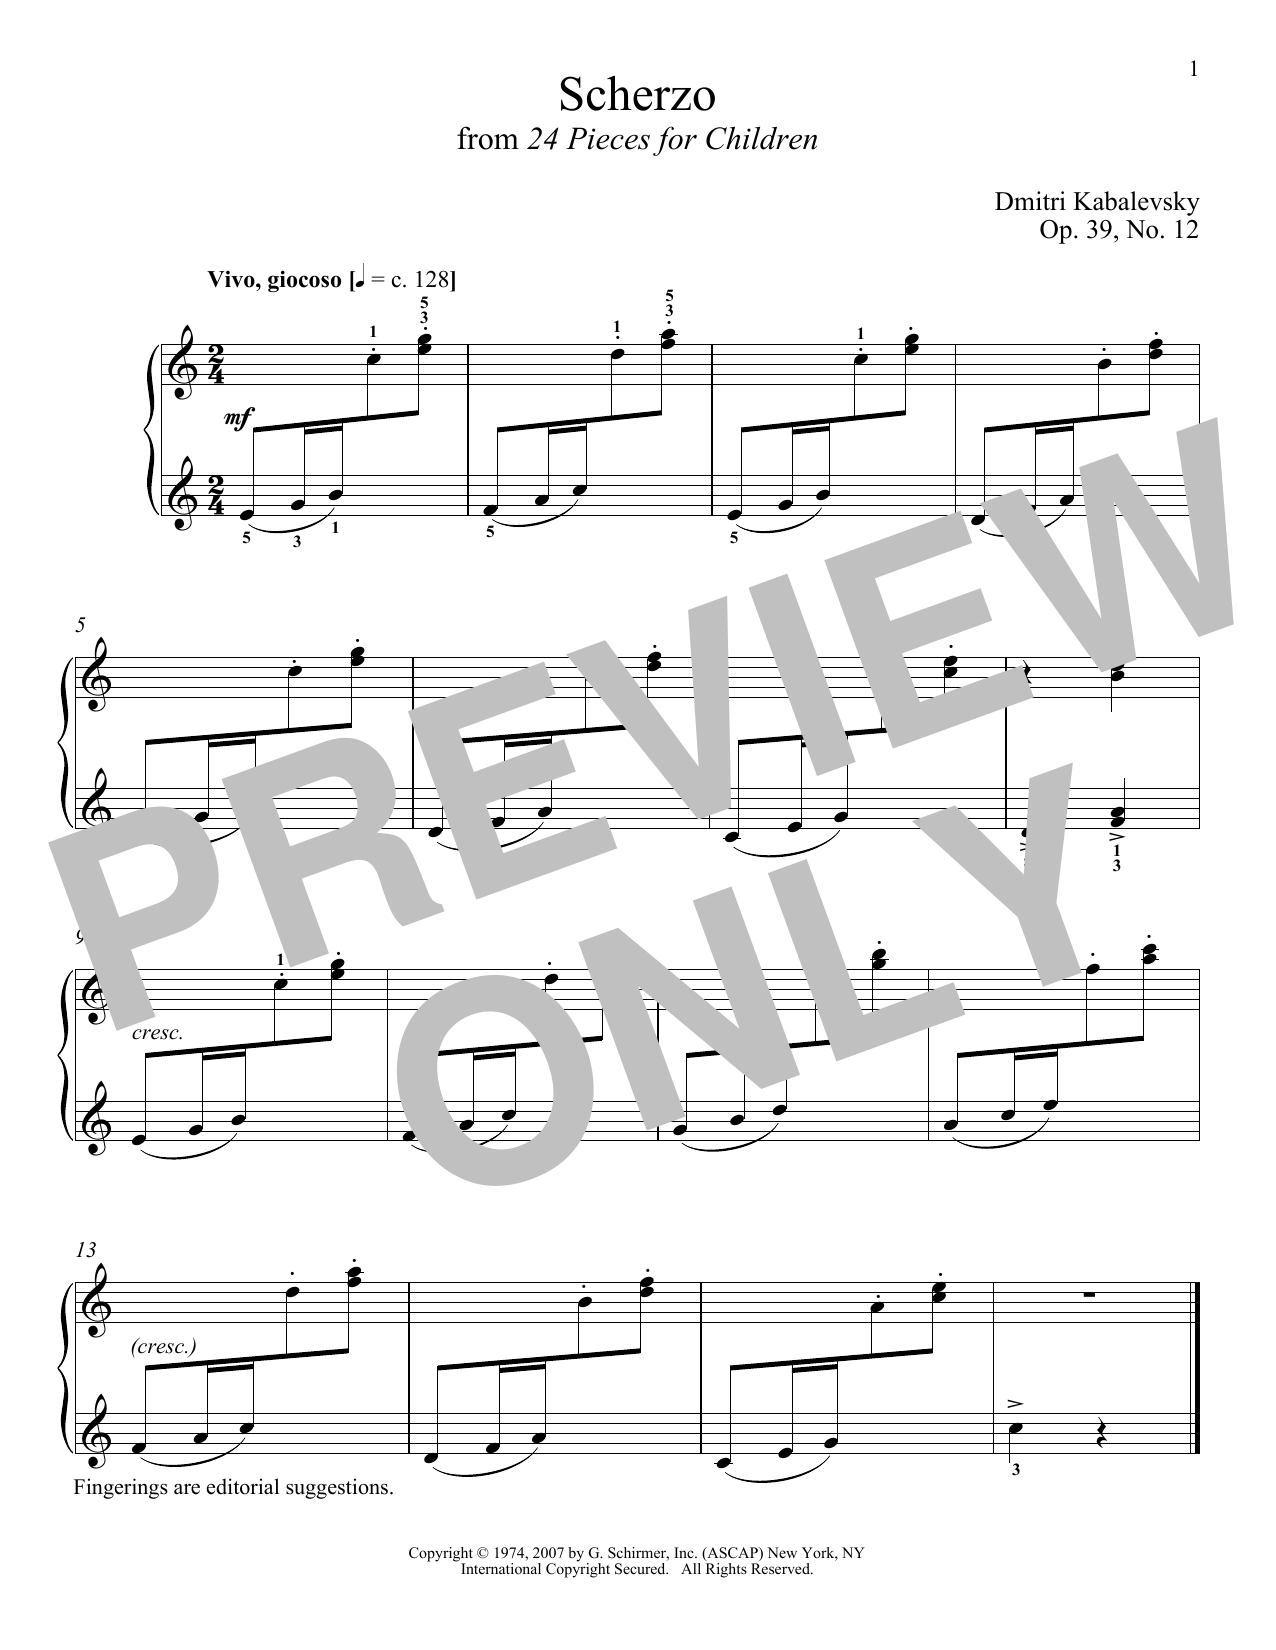 Download Dmitri Kabalevsky 'Scherzo, Op. 39, No. 12' Digital Sheet Music Notes & Chords and start playing in minutes